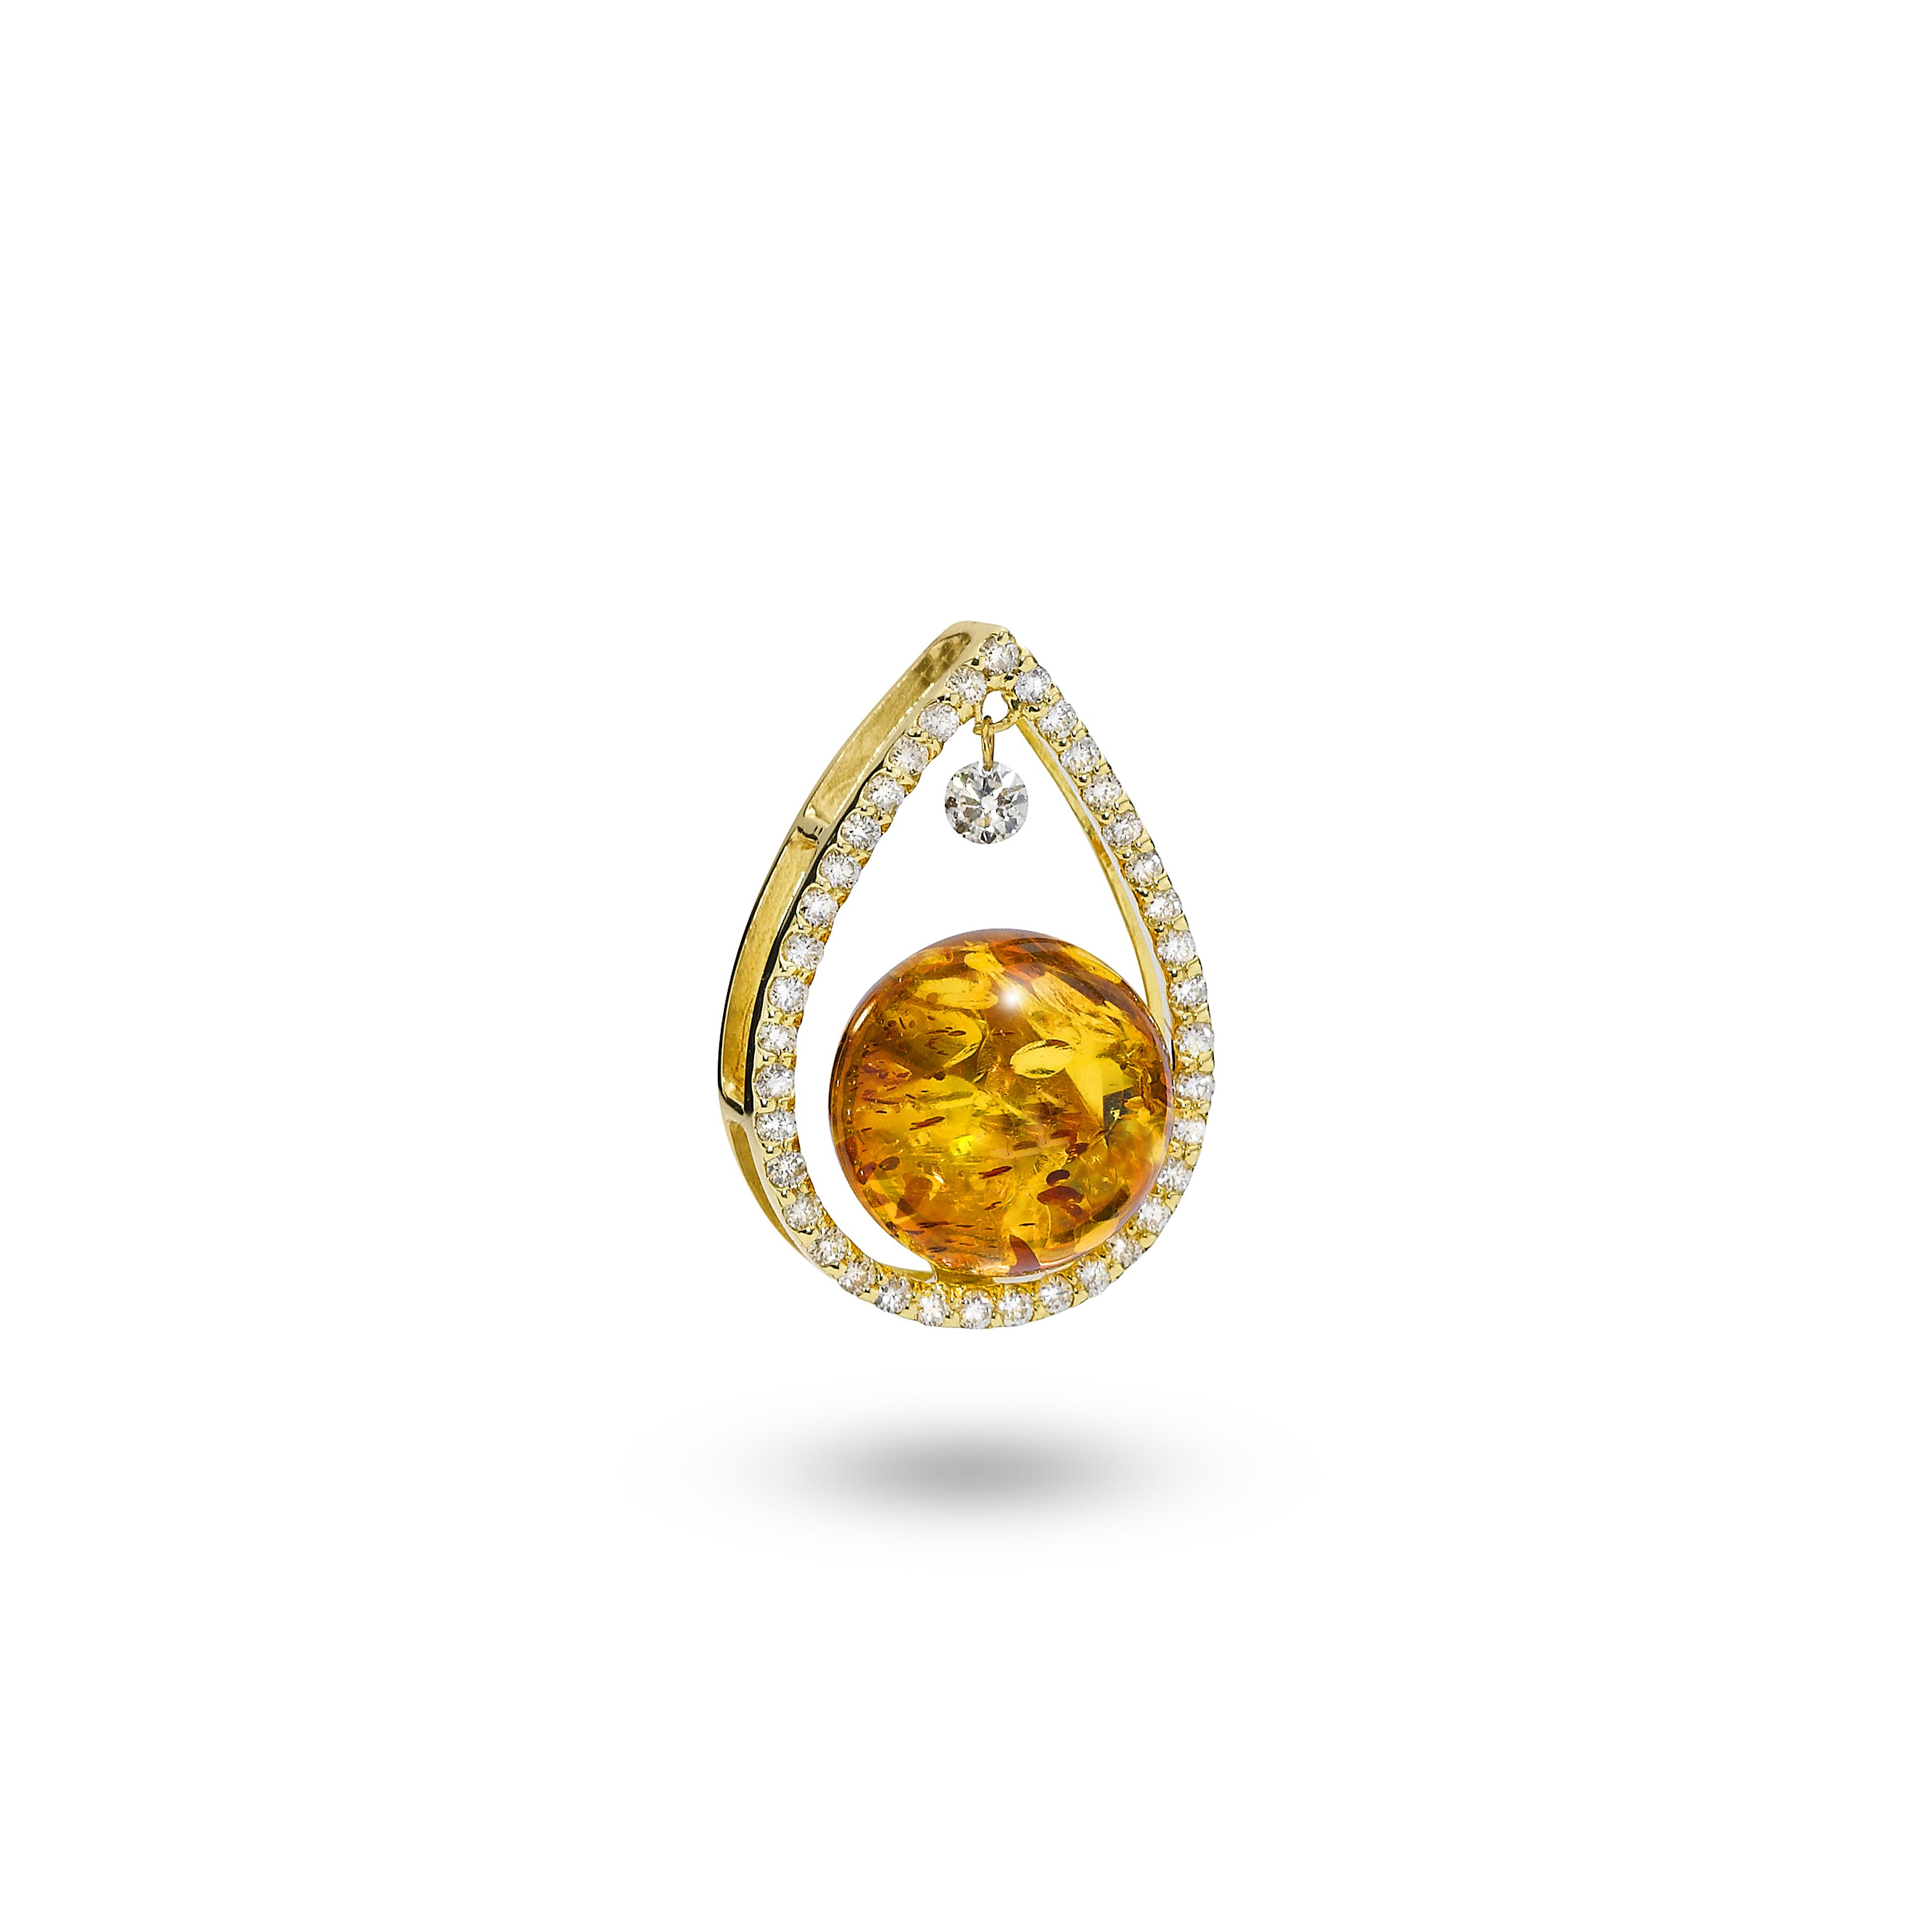 House of Amber - A pendant in 18 carat gold, 0,41CT diamonds and cognac amber. The pendant is a part of the Ballroom Collection. Item no.: 3378028